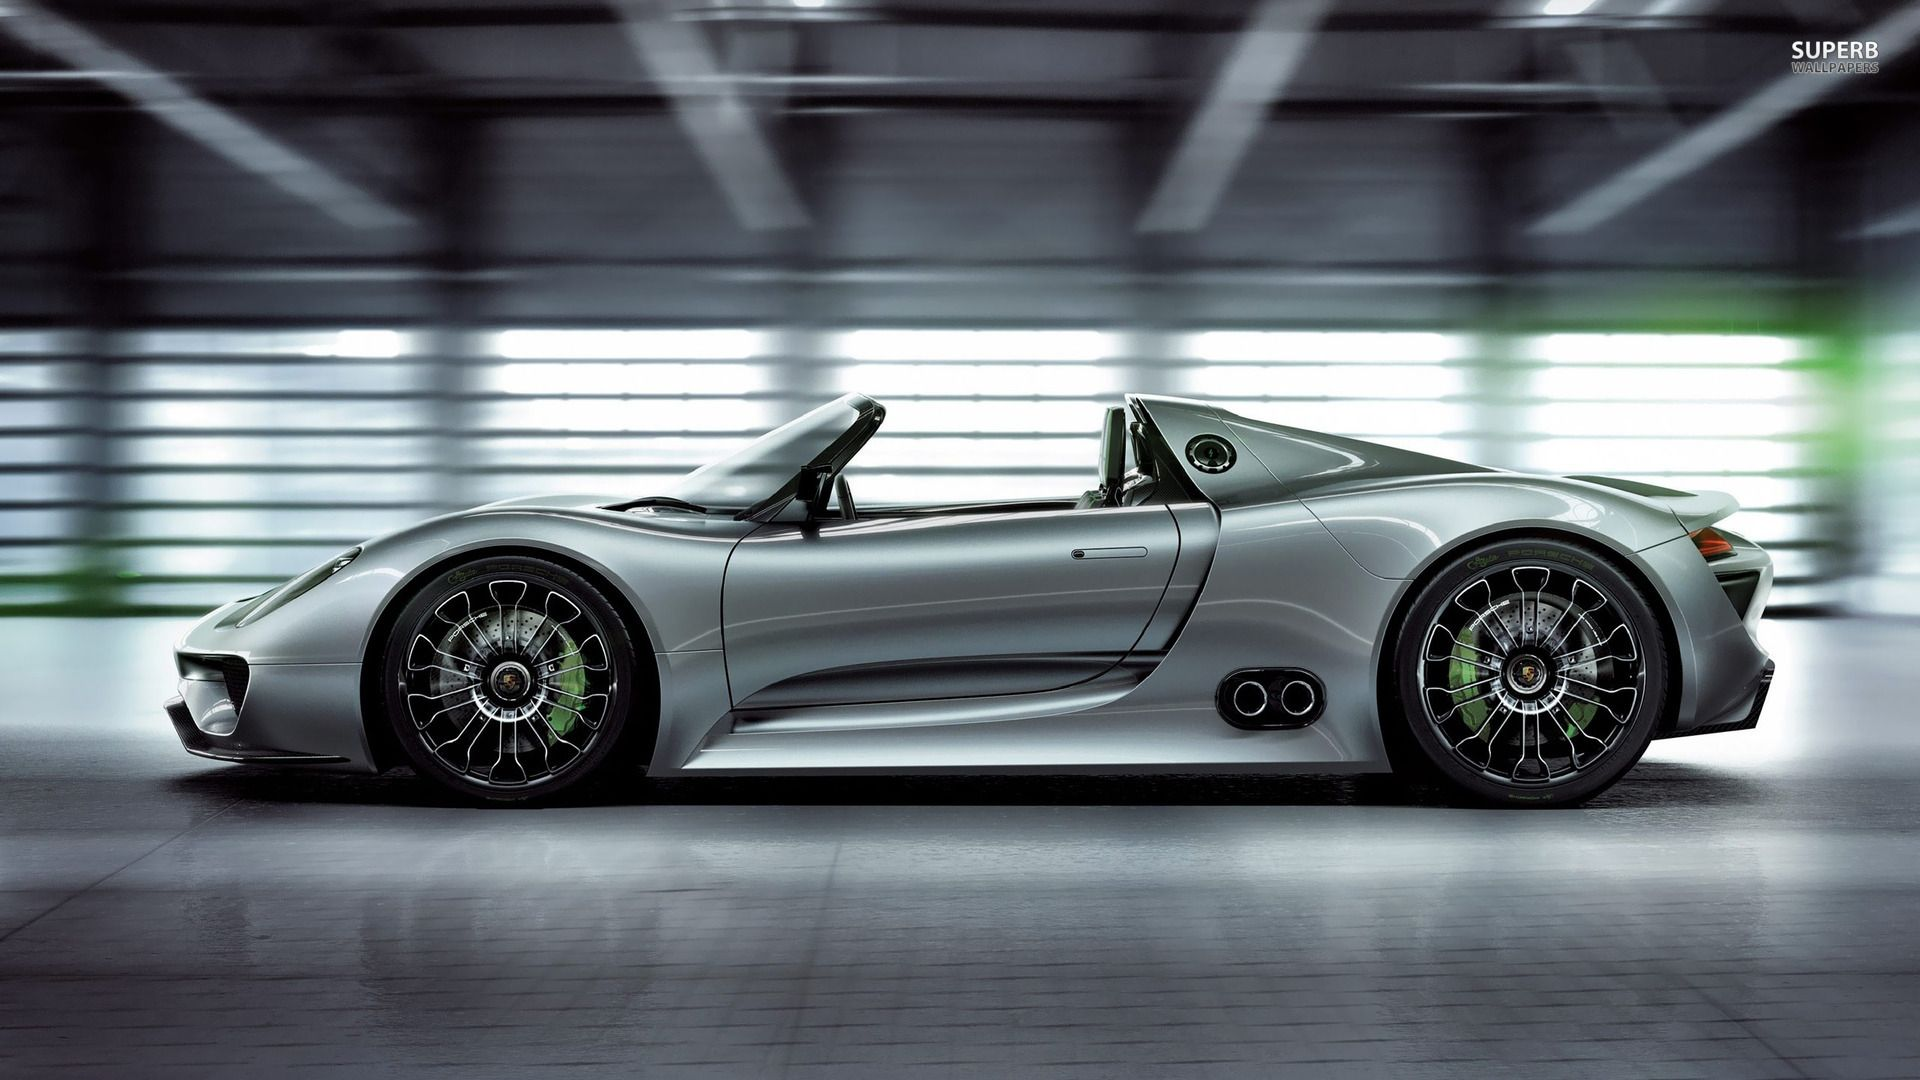 2014 Porsche 918 Spyder Wallpaper Picture